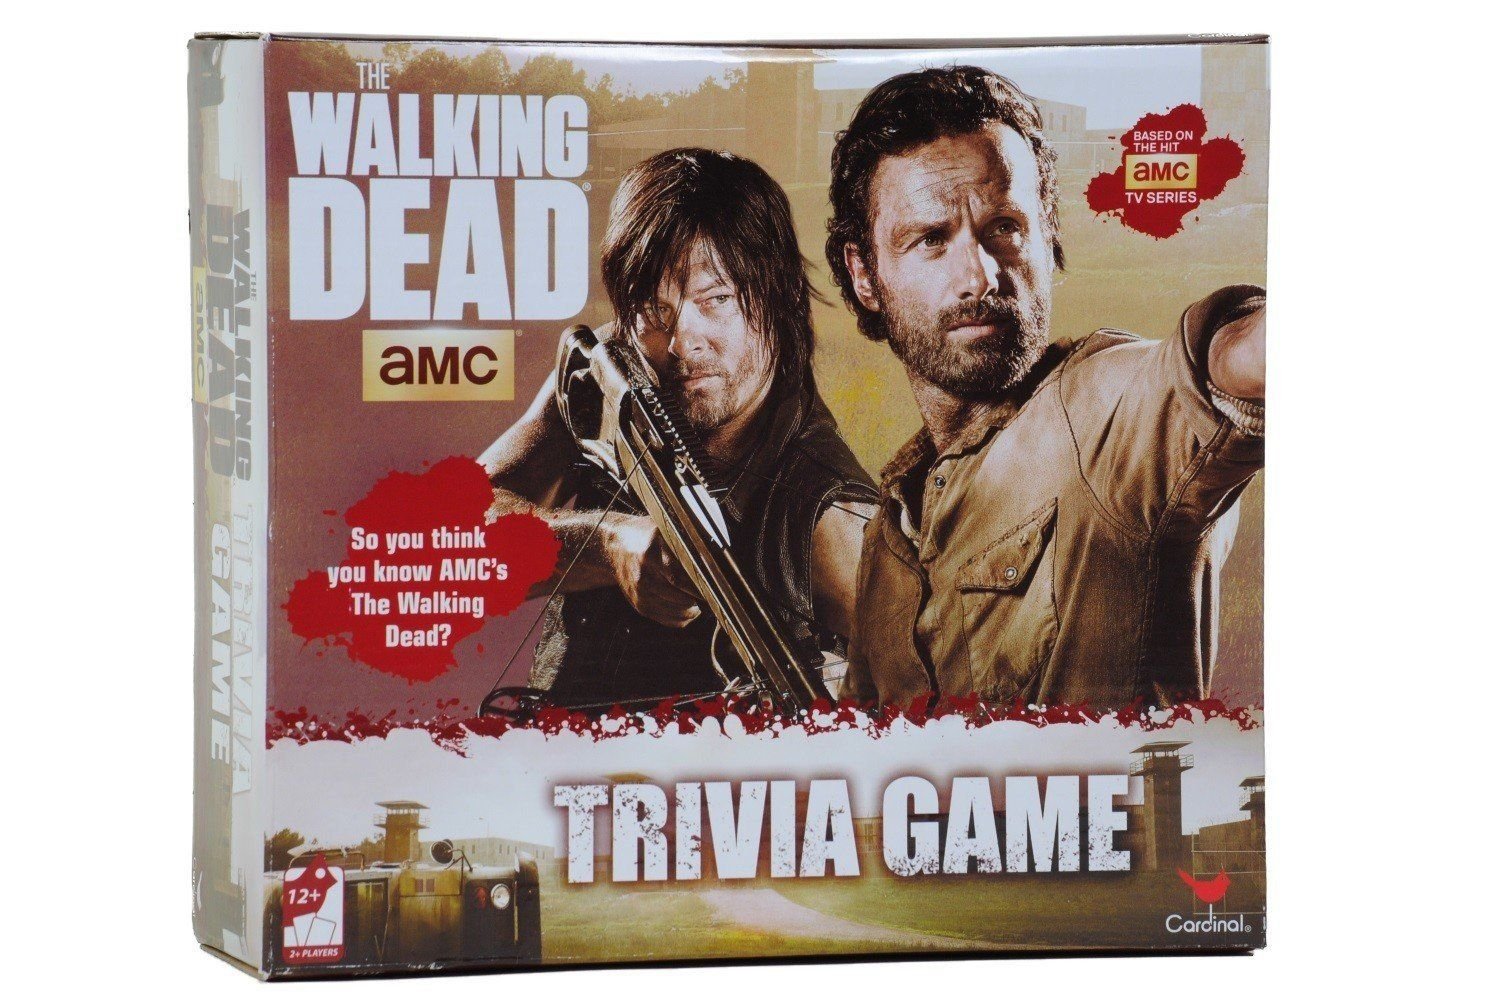 The Walking Dead Trivia Game Only 14 70 Reg 31 99 Become A Coupon Queen Walking Dead Facts Walking Dead Game The Walking Dead